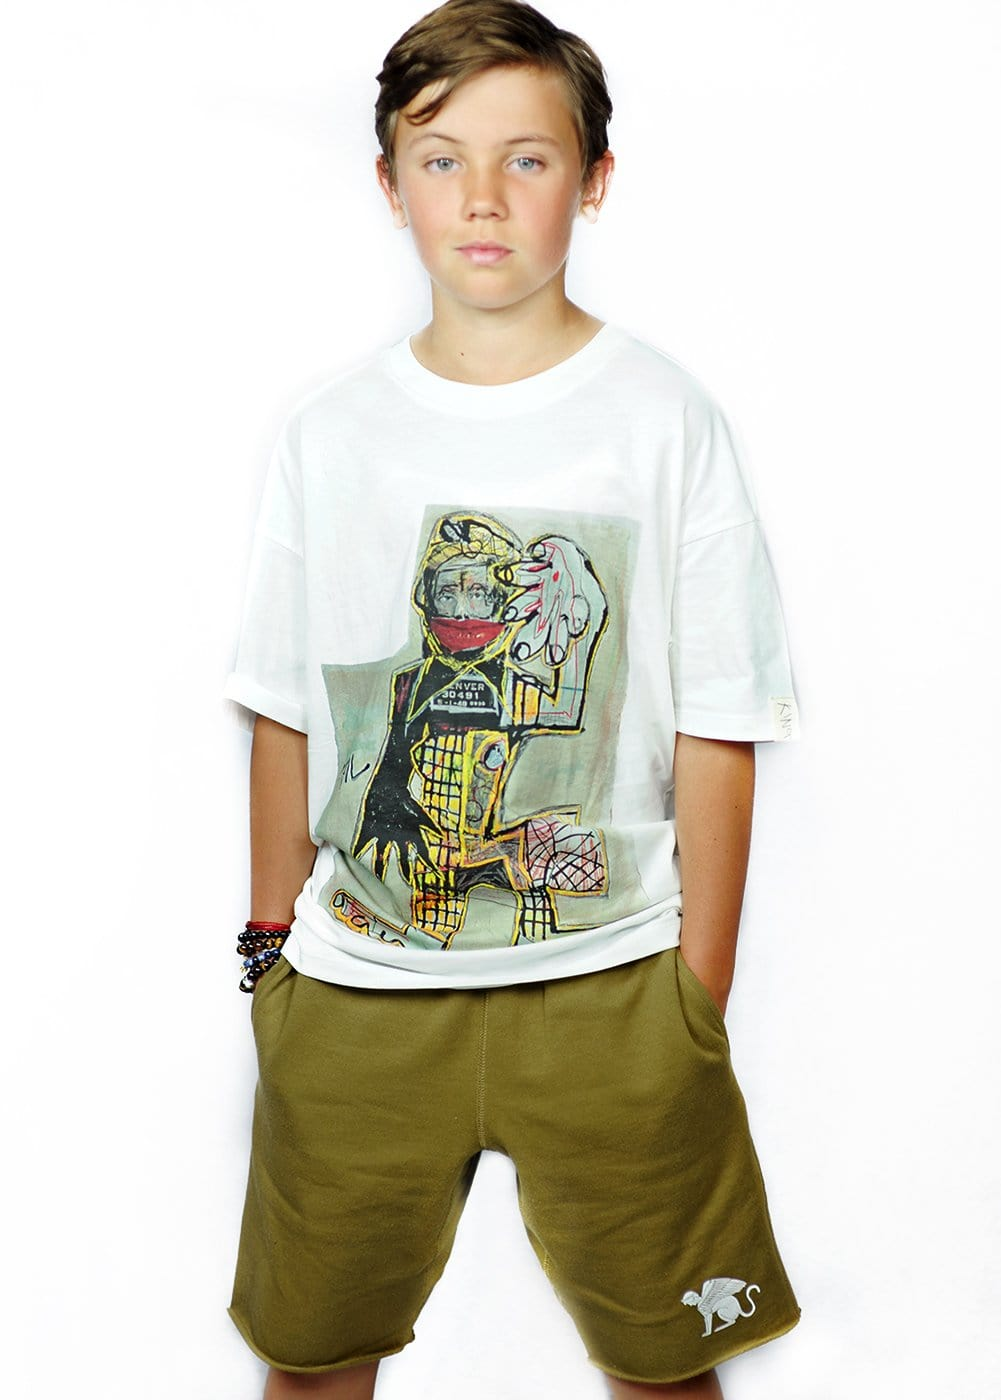 Teenzshop Youth Boys Sweat Shorts With Sphinx Logo